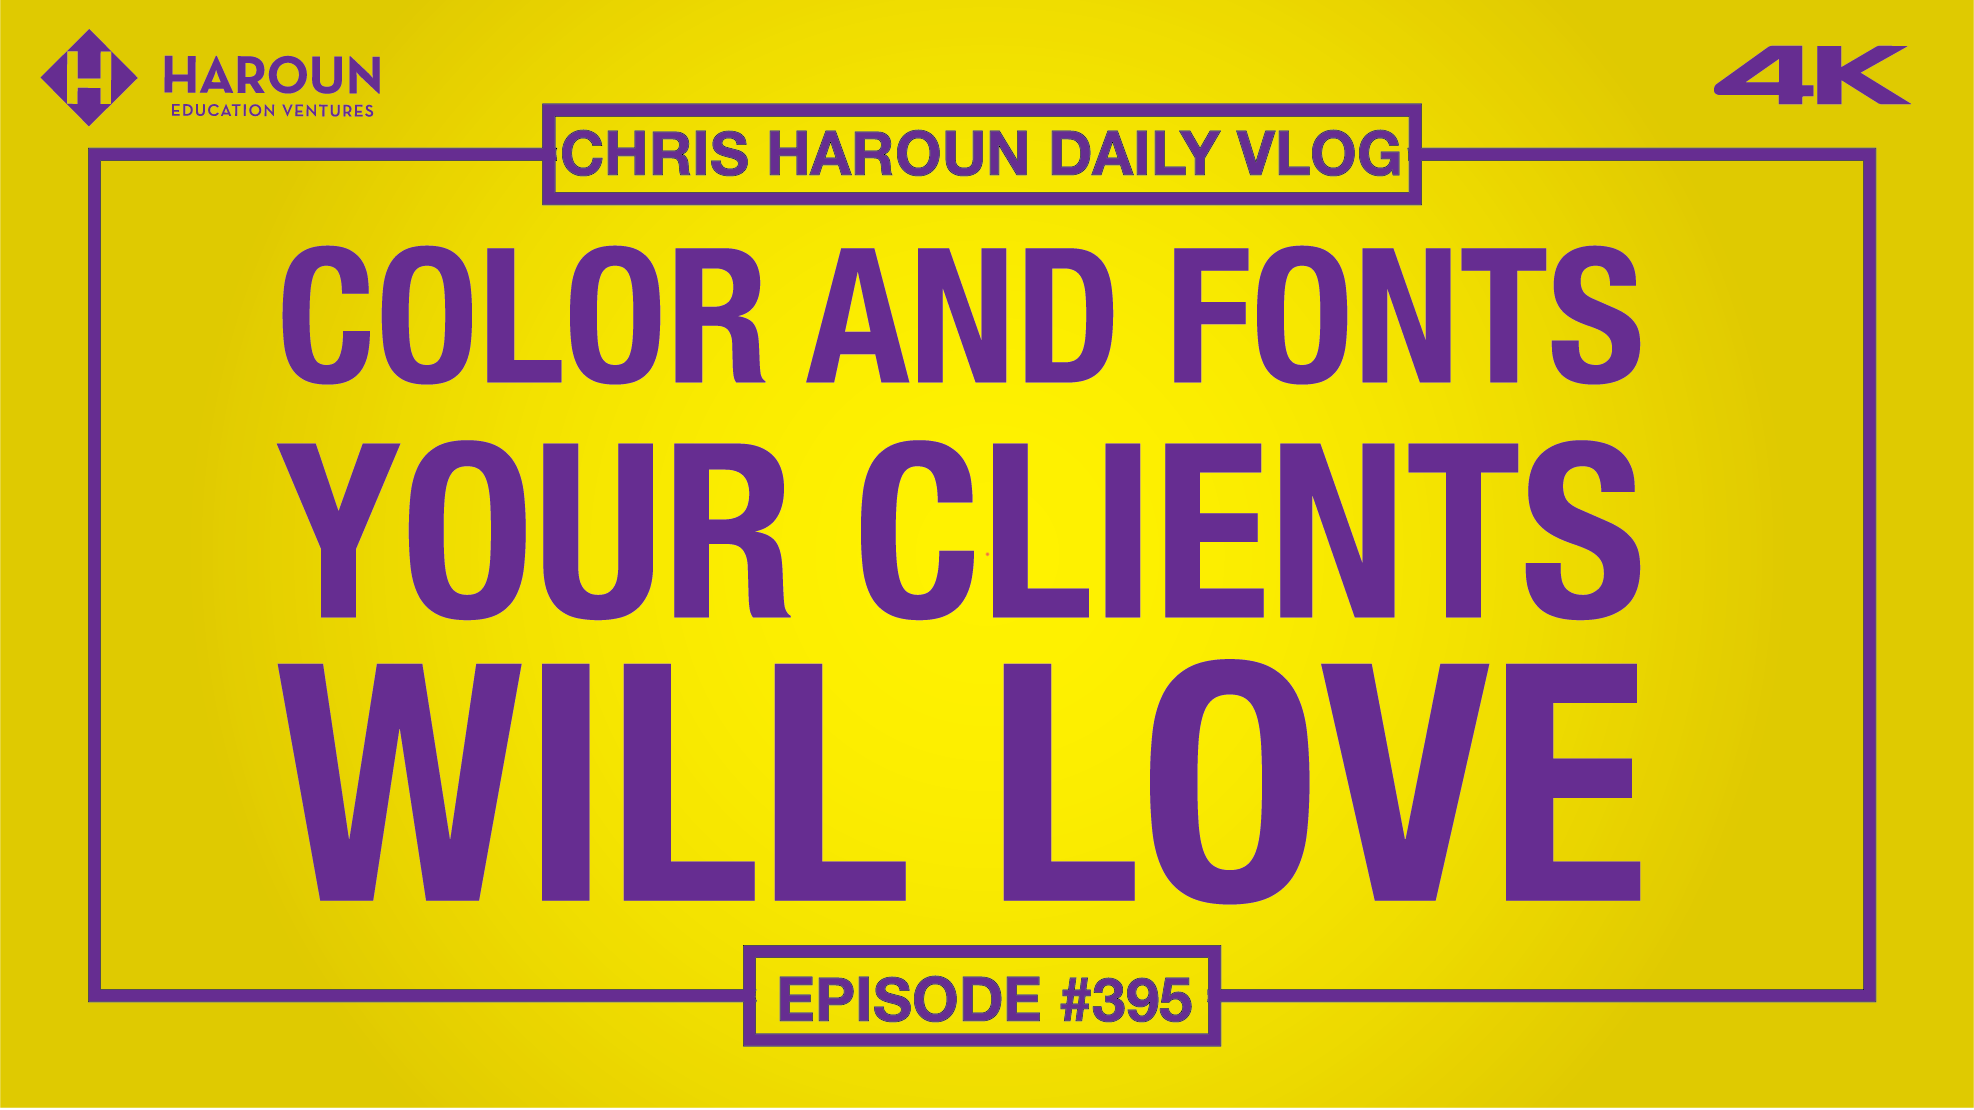 VLOG_395_8_30_2019_Color and Fonts Your Clients Will Love.png